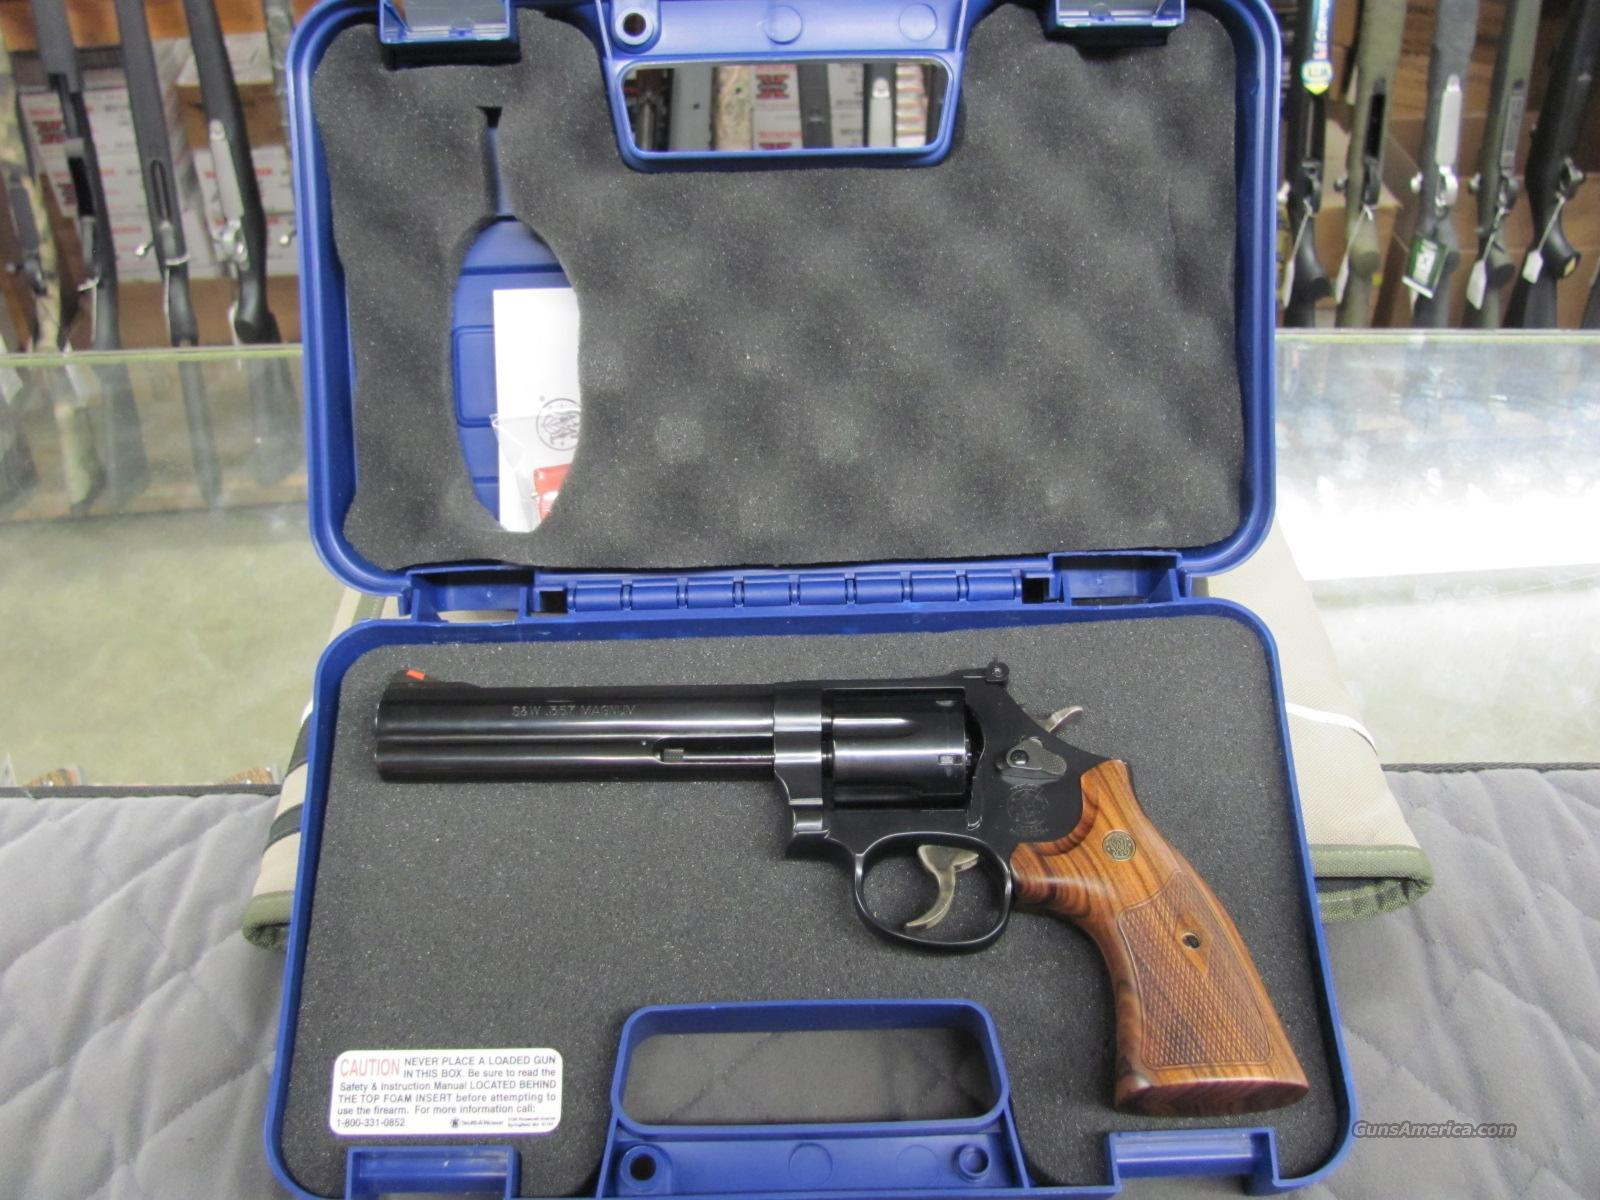 Smith & Wesson Model 586 6 Inch 357 Mag  **NEW**  Guns > Pistols > Smith & Wesson Revolvers > Full Frame Revolver